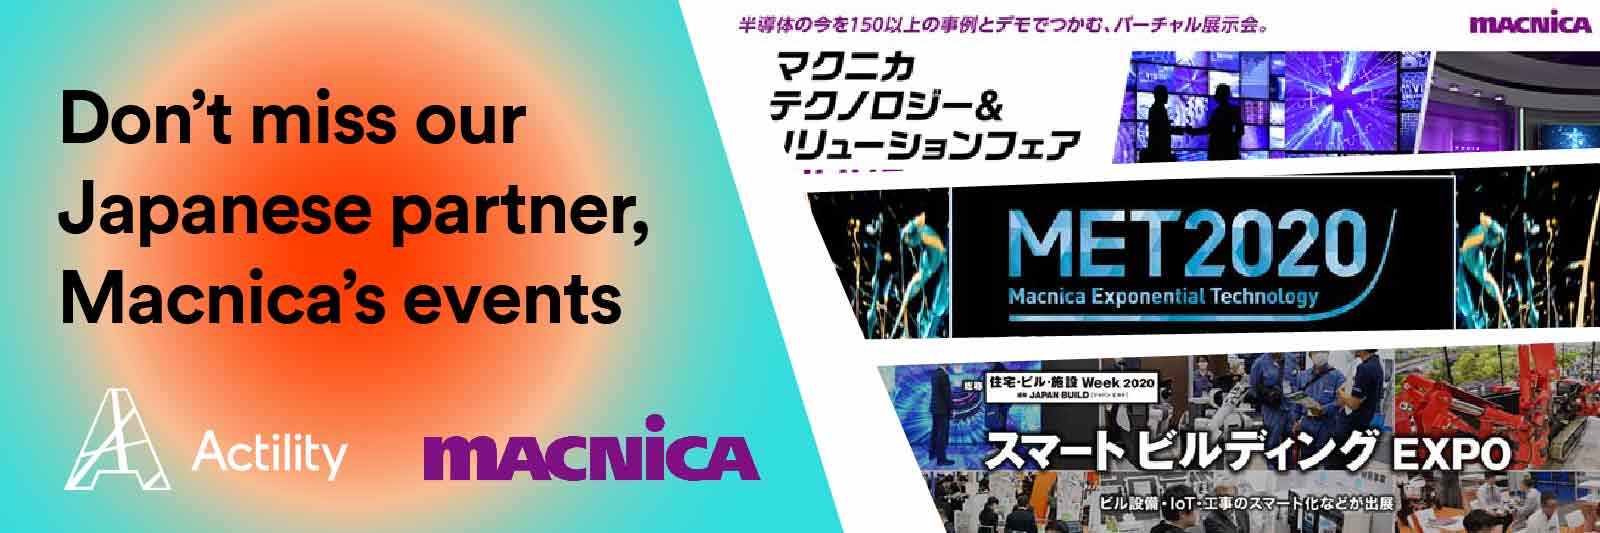 Picture of Macnica's events Press release banner